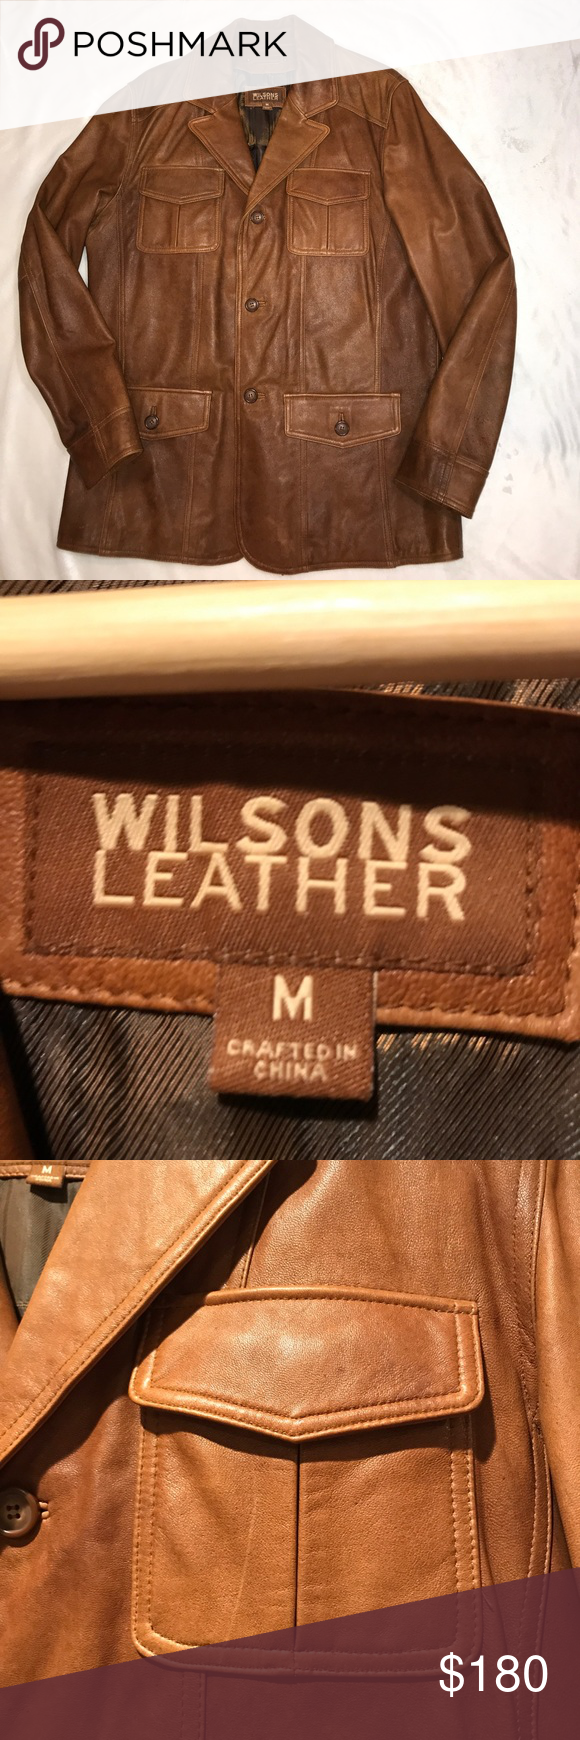 Wilsons Leather jacket size M Wilsons leather, Wilsons